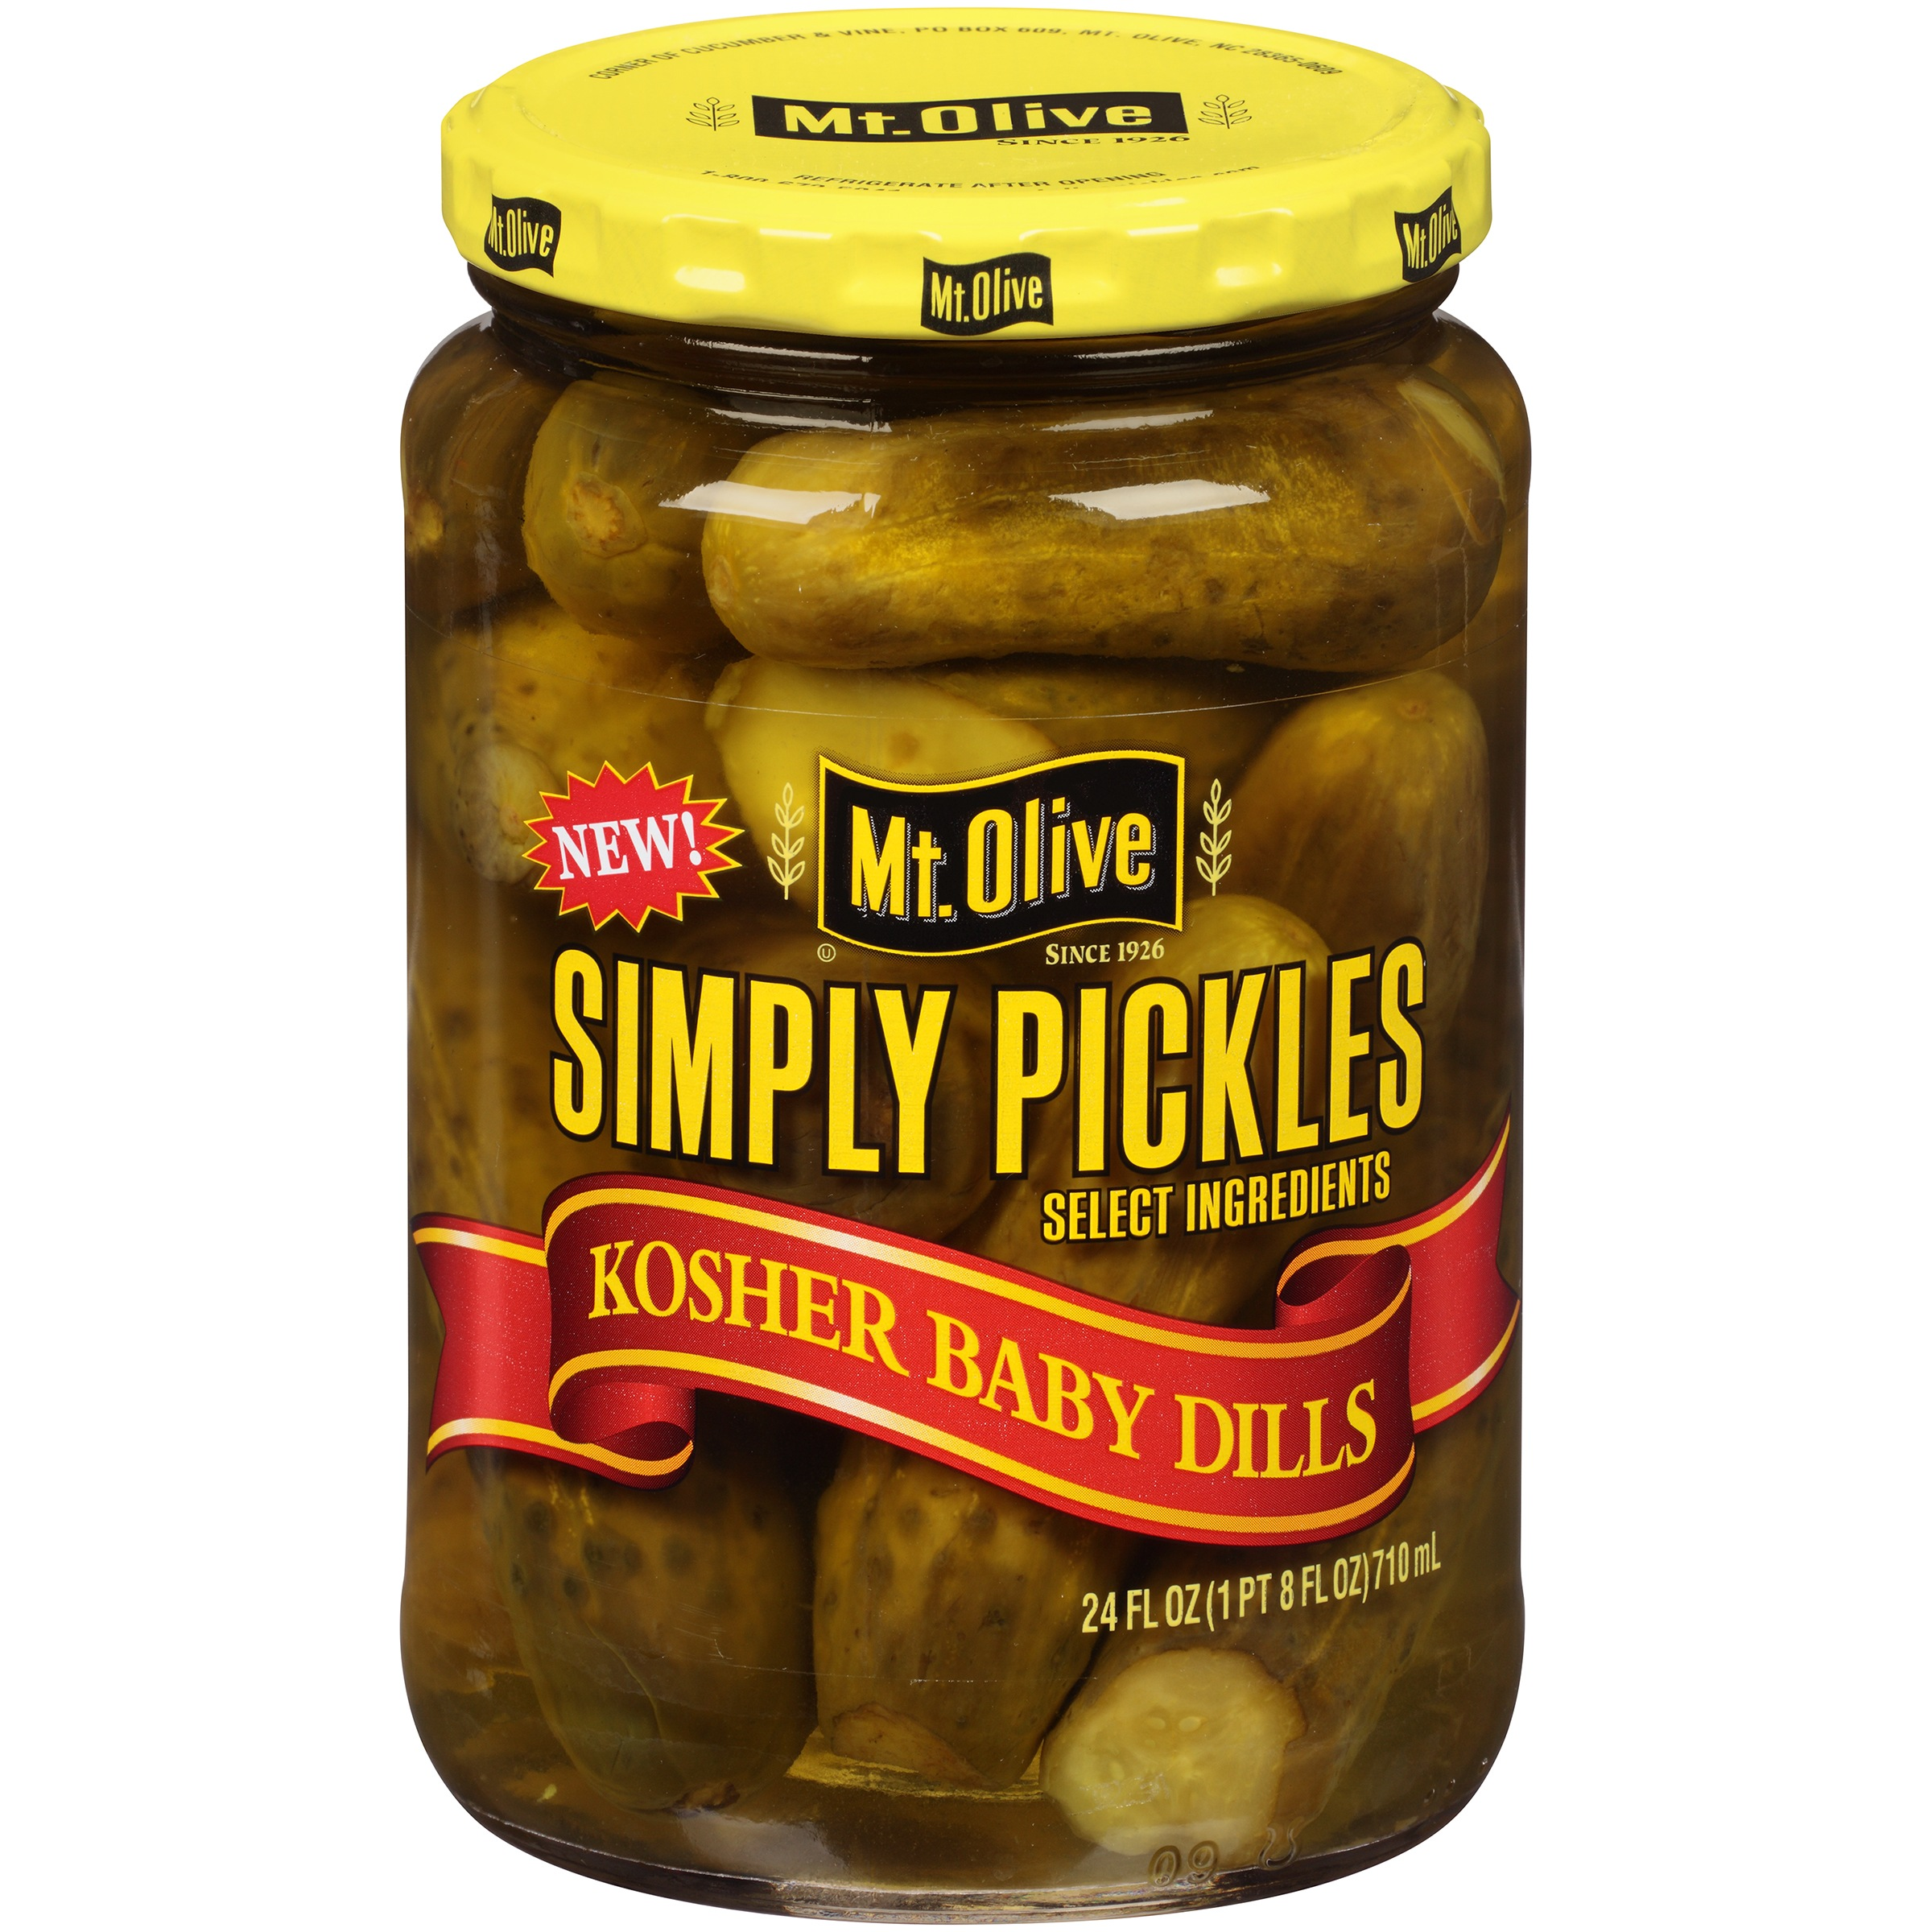 Mt. Olive Kosher Baby Dills Pickles, 24 fl oz by Mt. Olive Pickle Company, Inc.